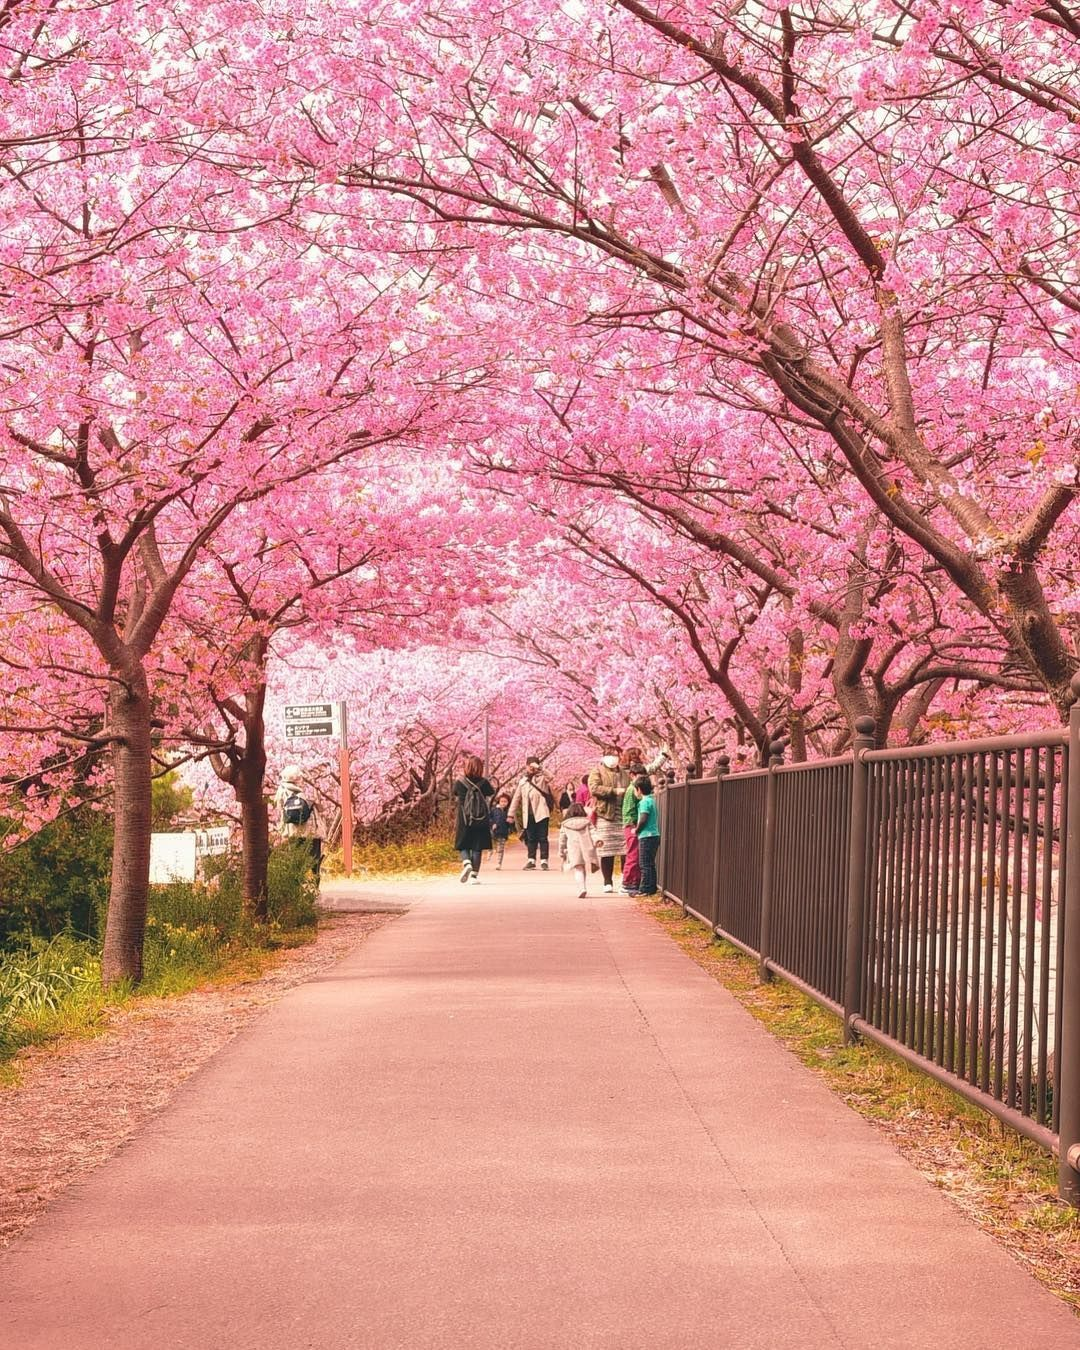 Picture By Japantravelplanet This Picture Of A Sakura Tunnel Was Taken Last Sunday At The Kawazu Cherr Japan Travel Japan Vacation Cherry Blossom Festival